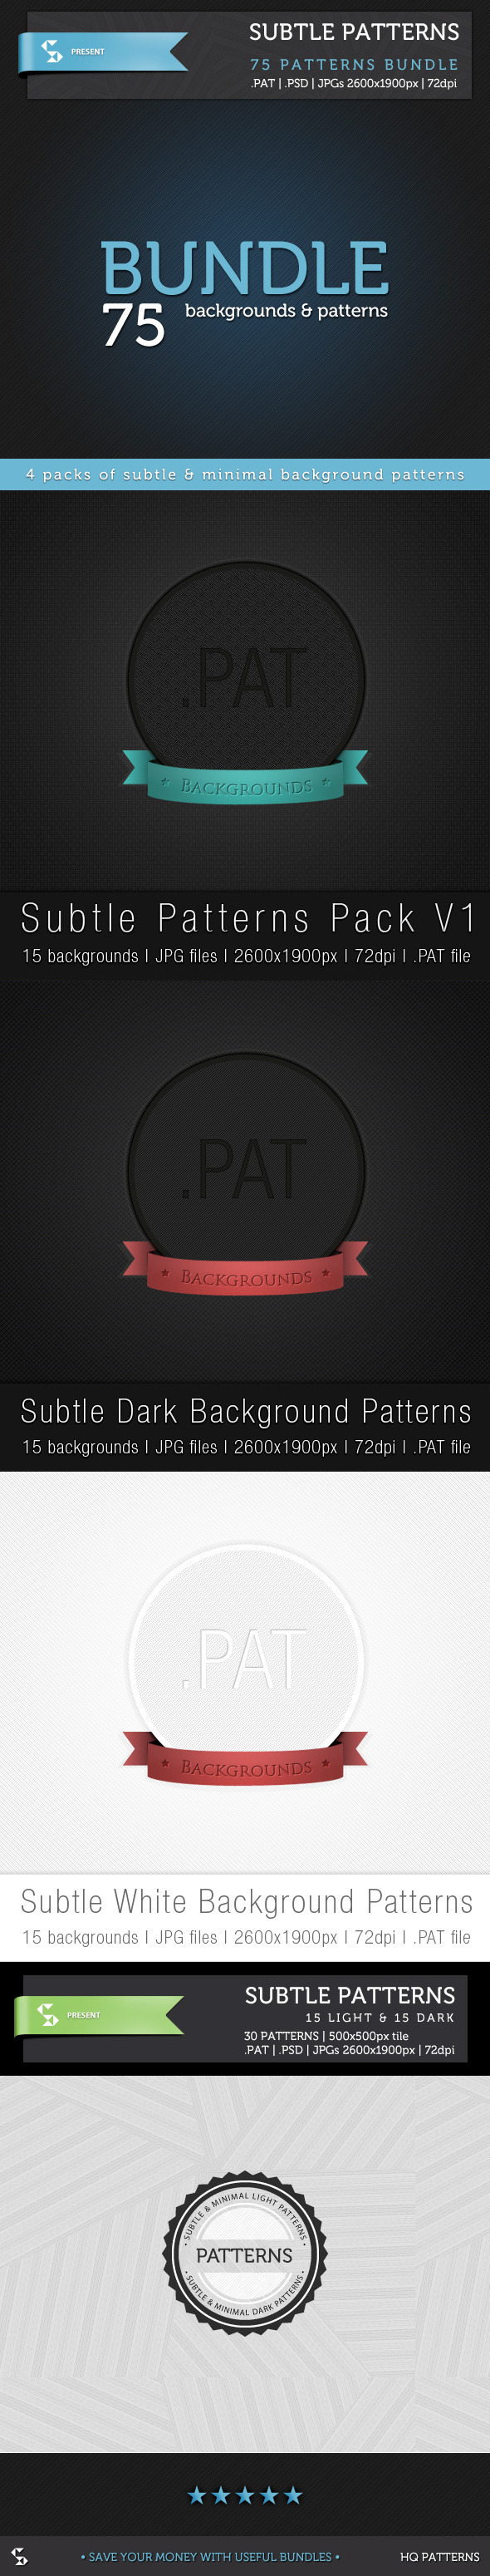 Subtle Background Patterns - Bundle - Textures / Fills / Patterns Photoshop